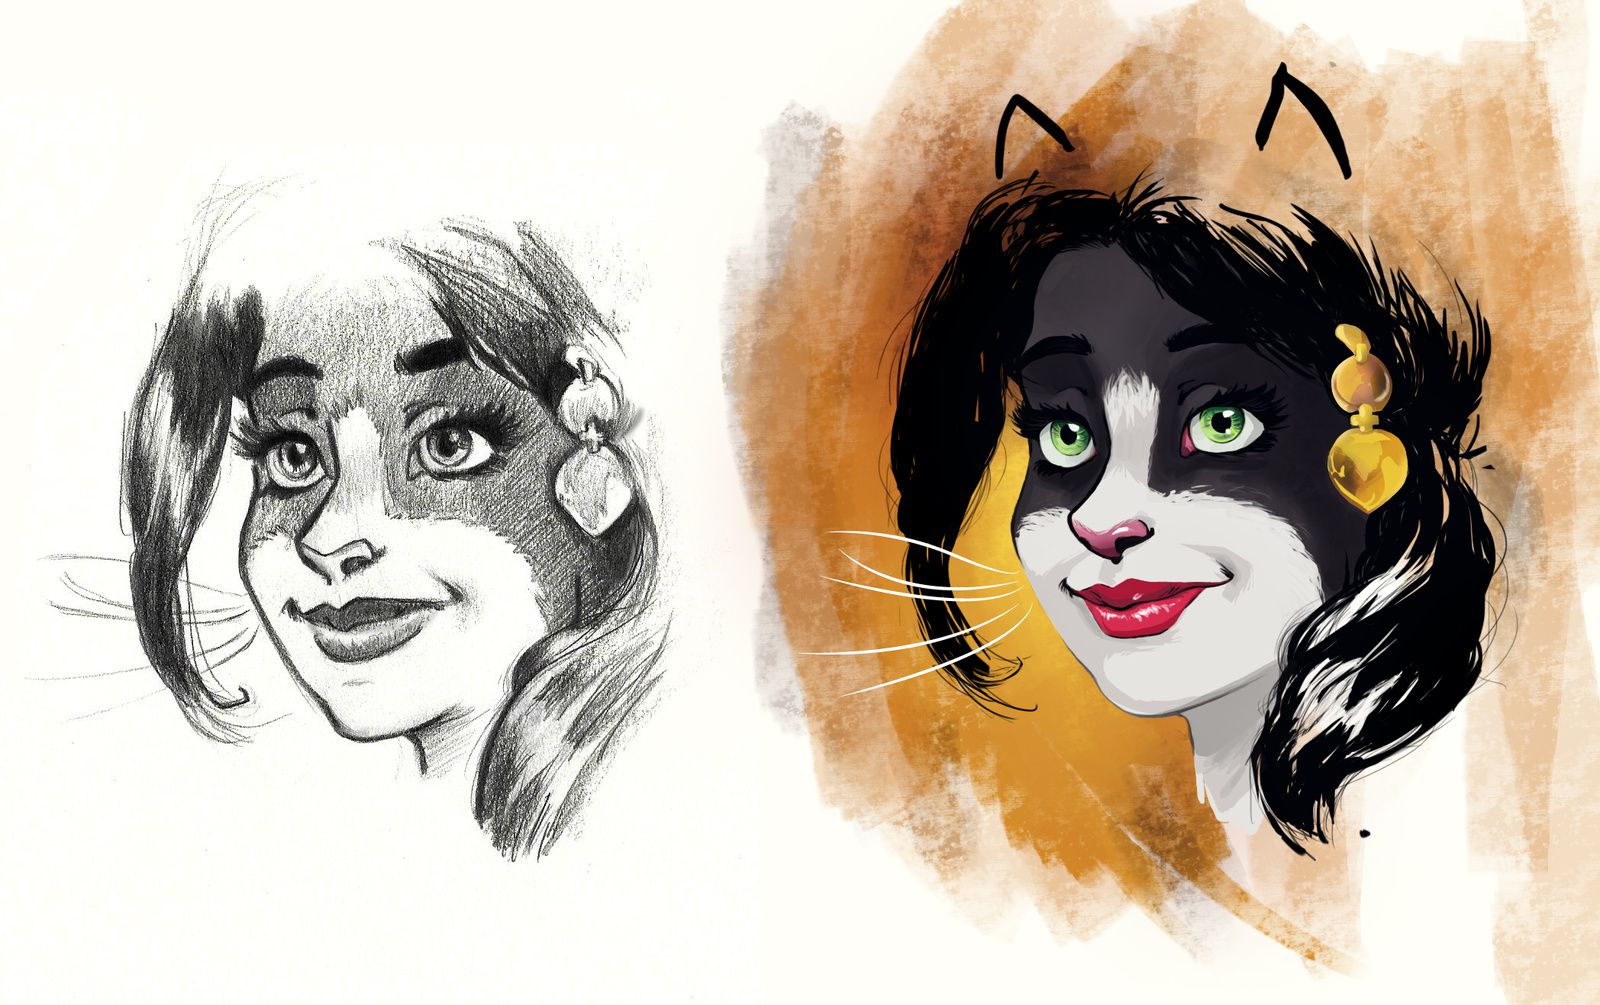 Blacksad Donna Friendship sketch illustration